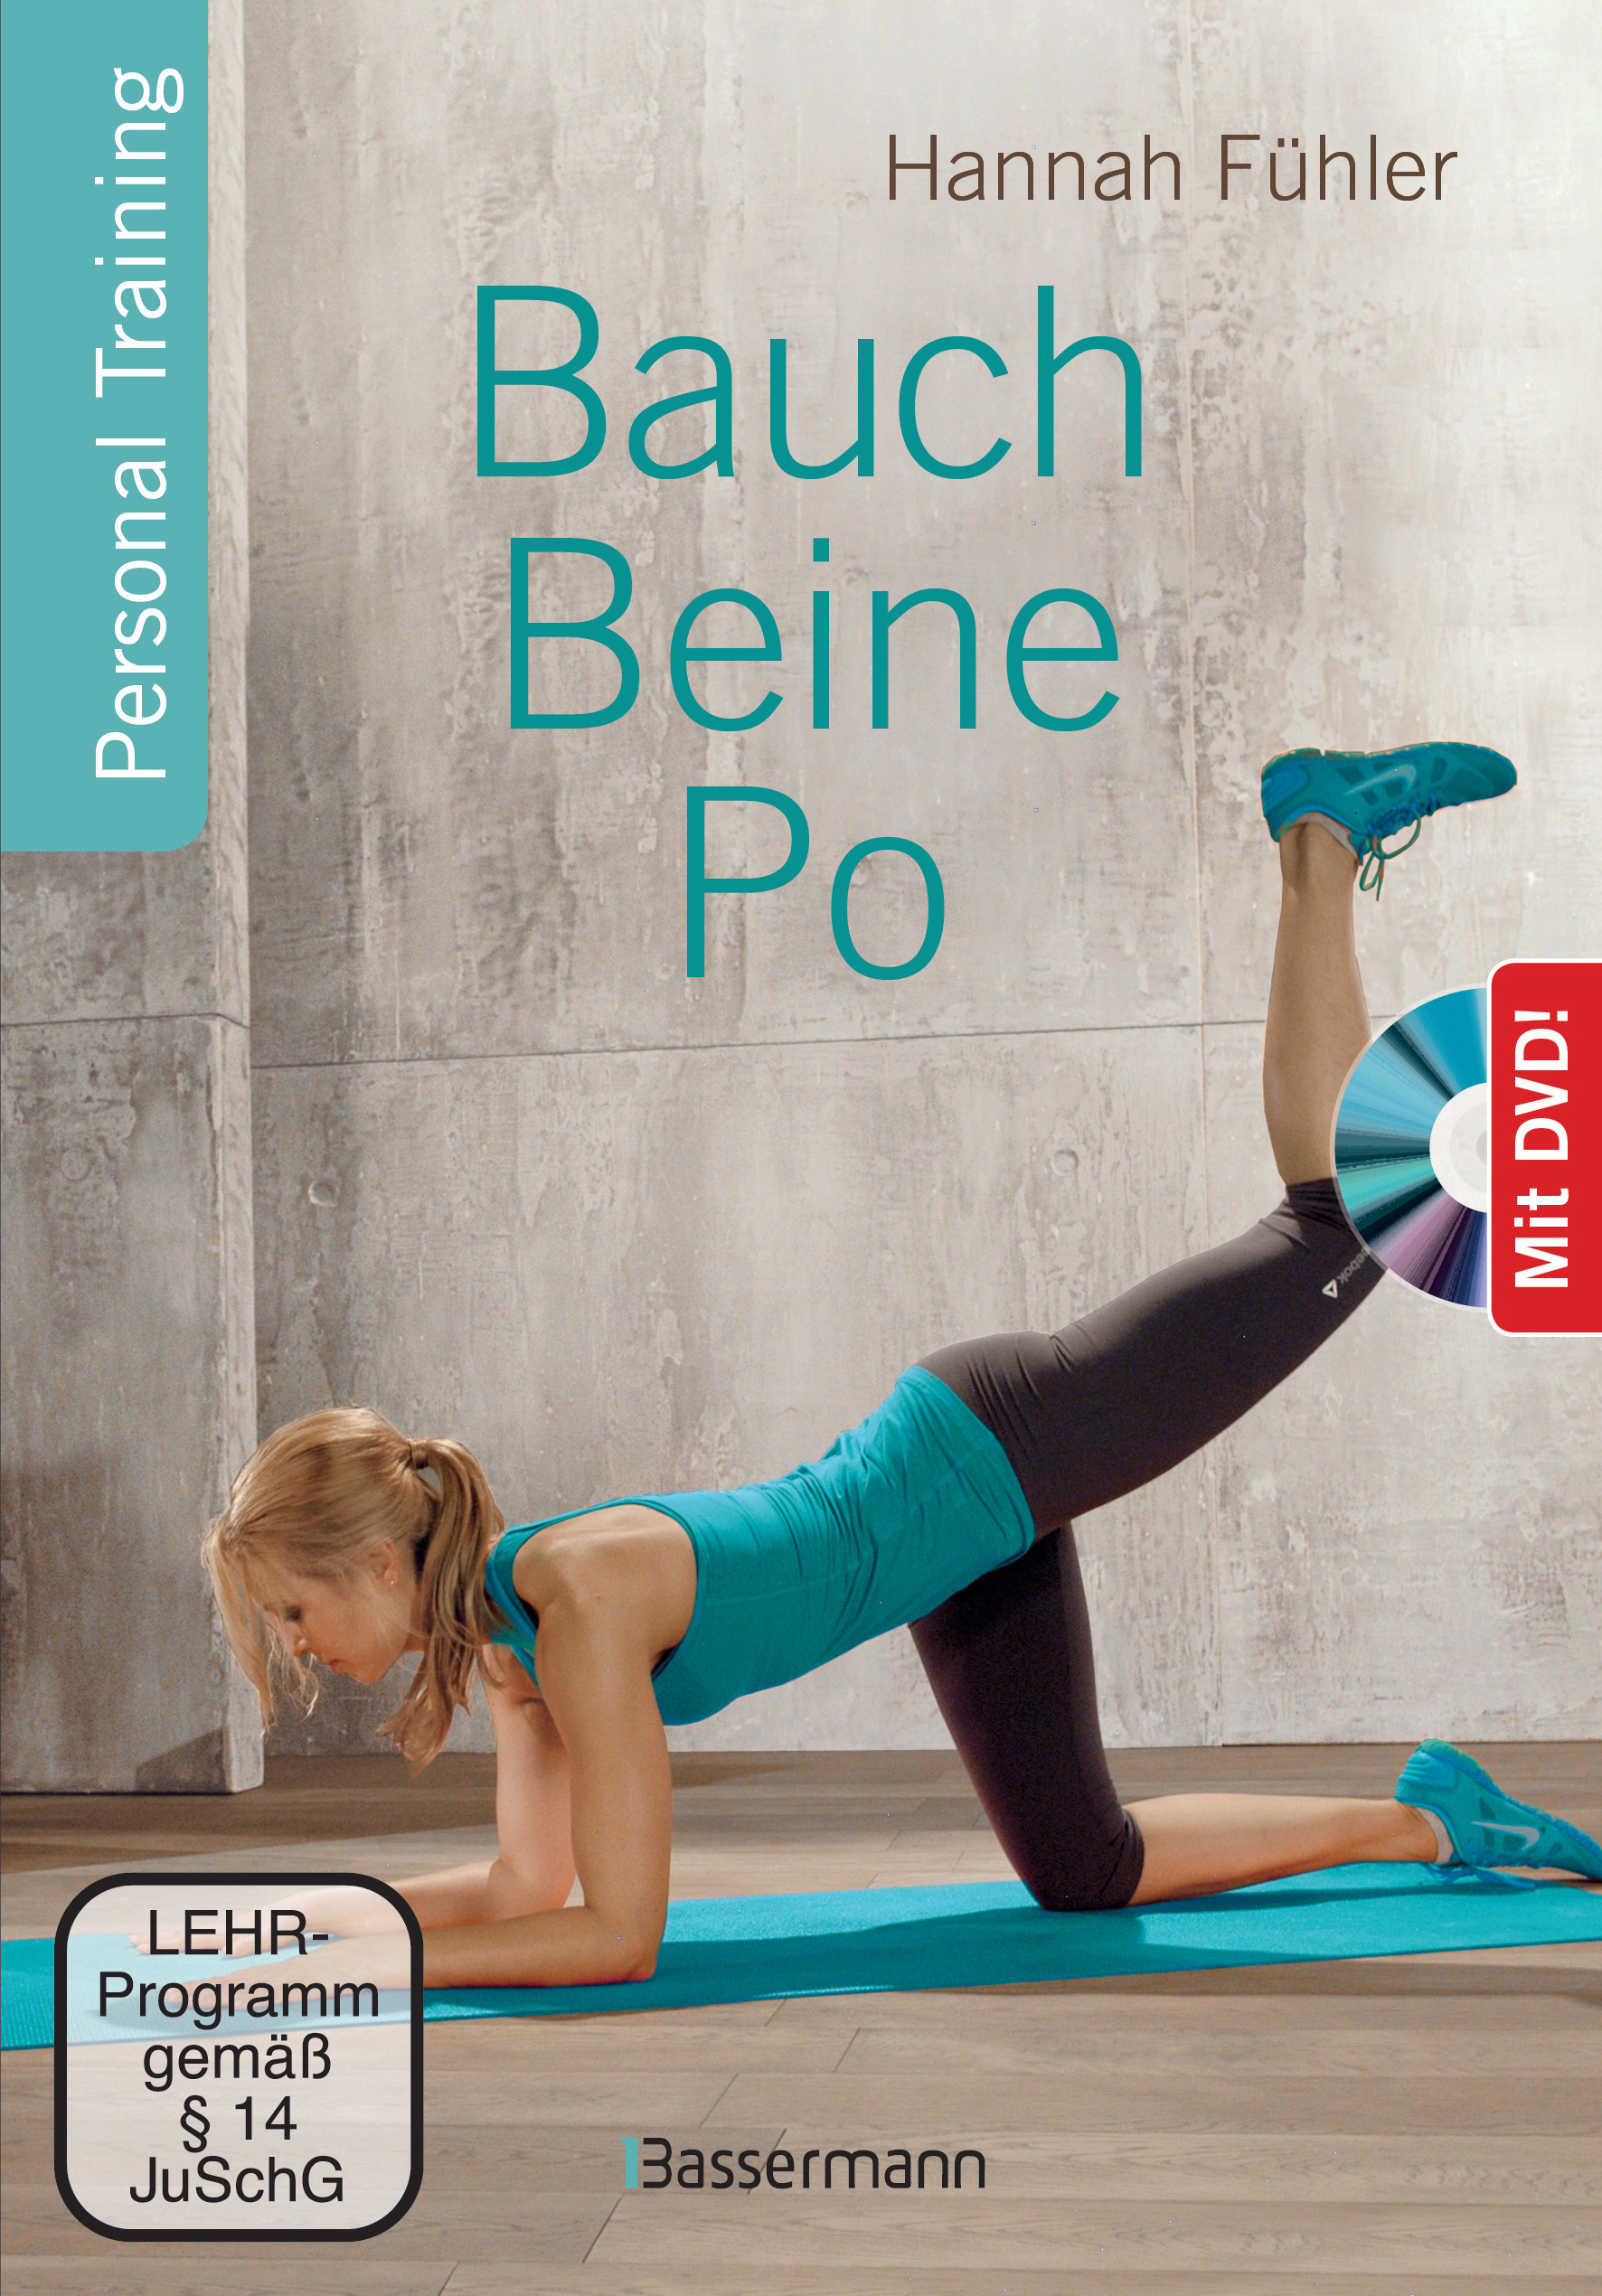 bauch beine po dvd von f hler hannah personal training. Black Bedroom Furniture Sets. Home Design Ideas